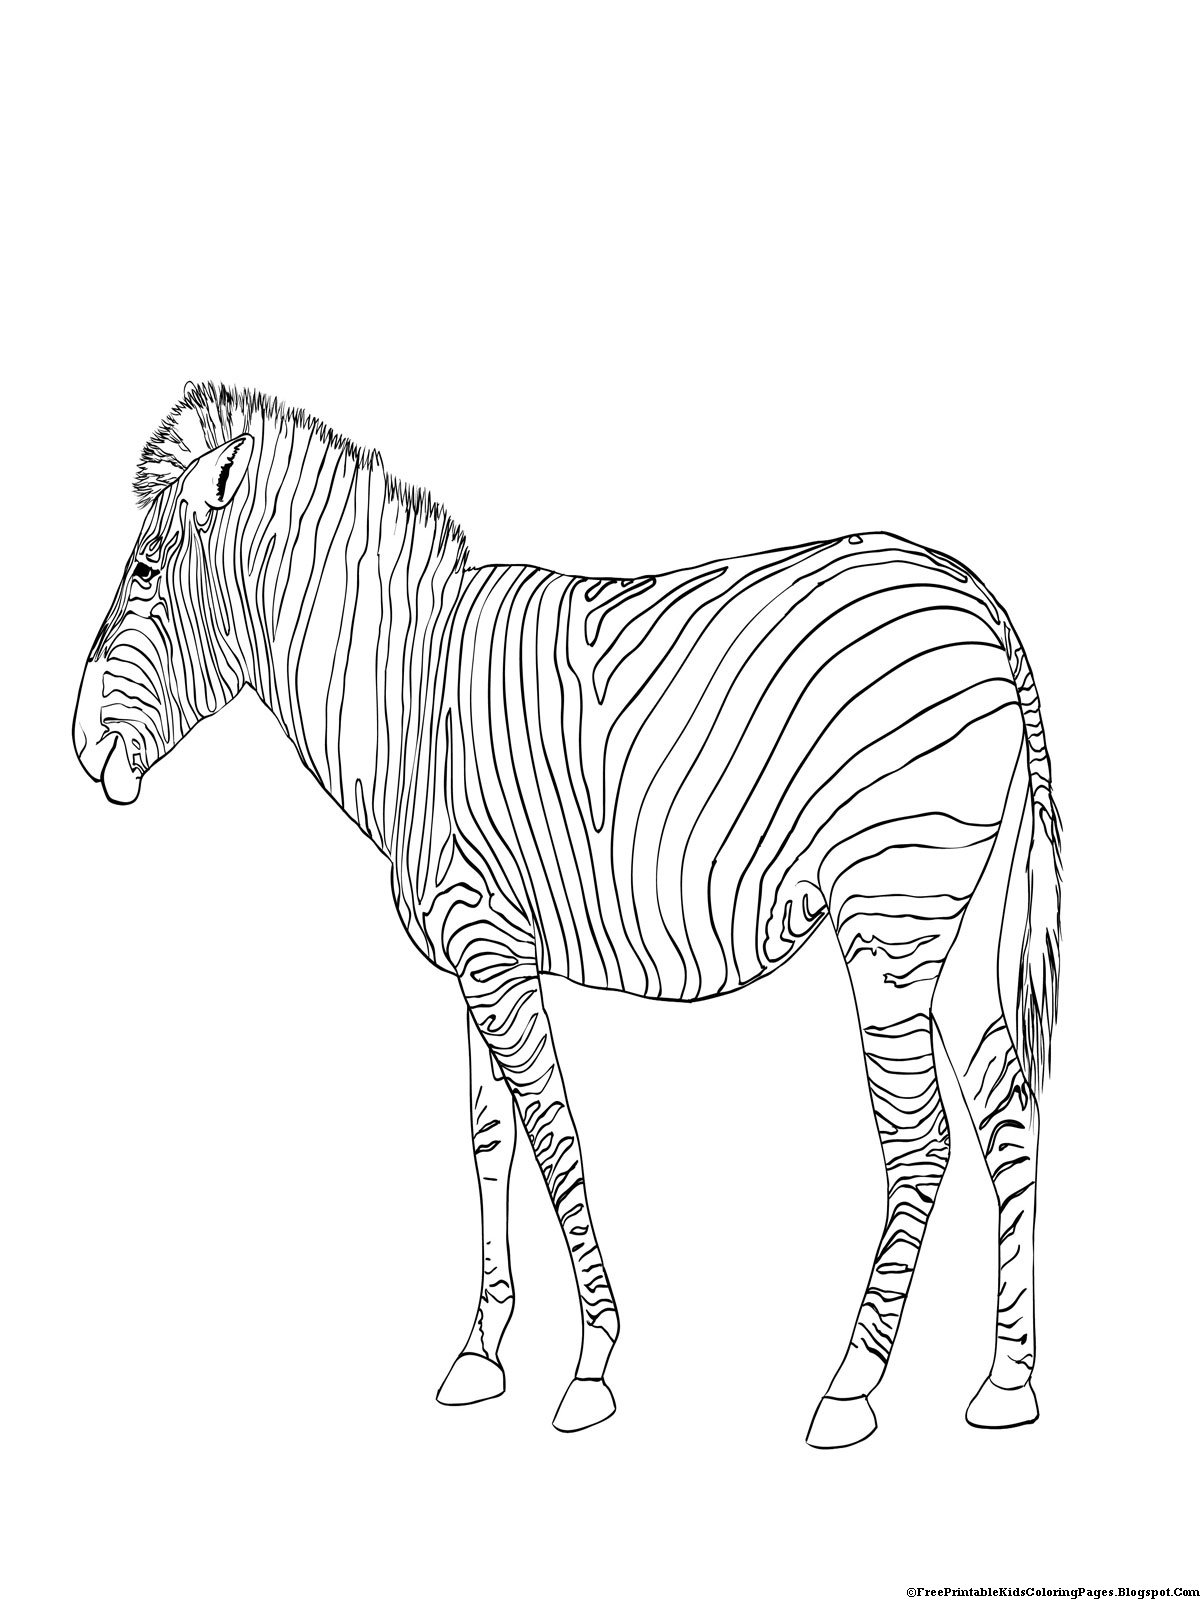 zebra colouring pages to print free printable zebra coloring pages for kids animal place to colouring zebra print pages